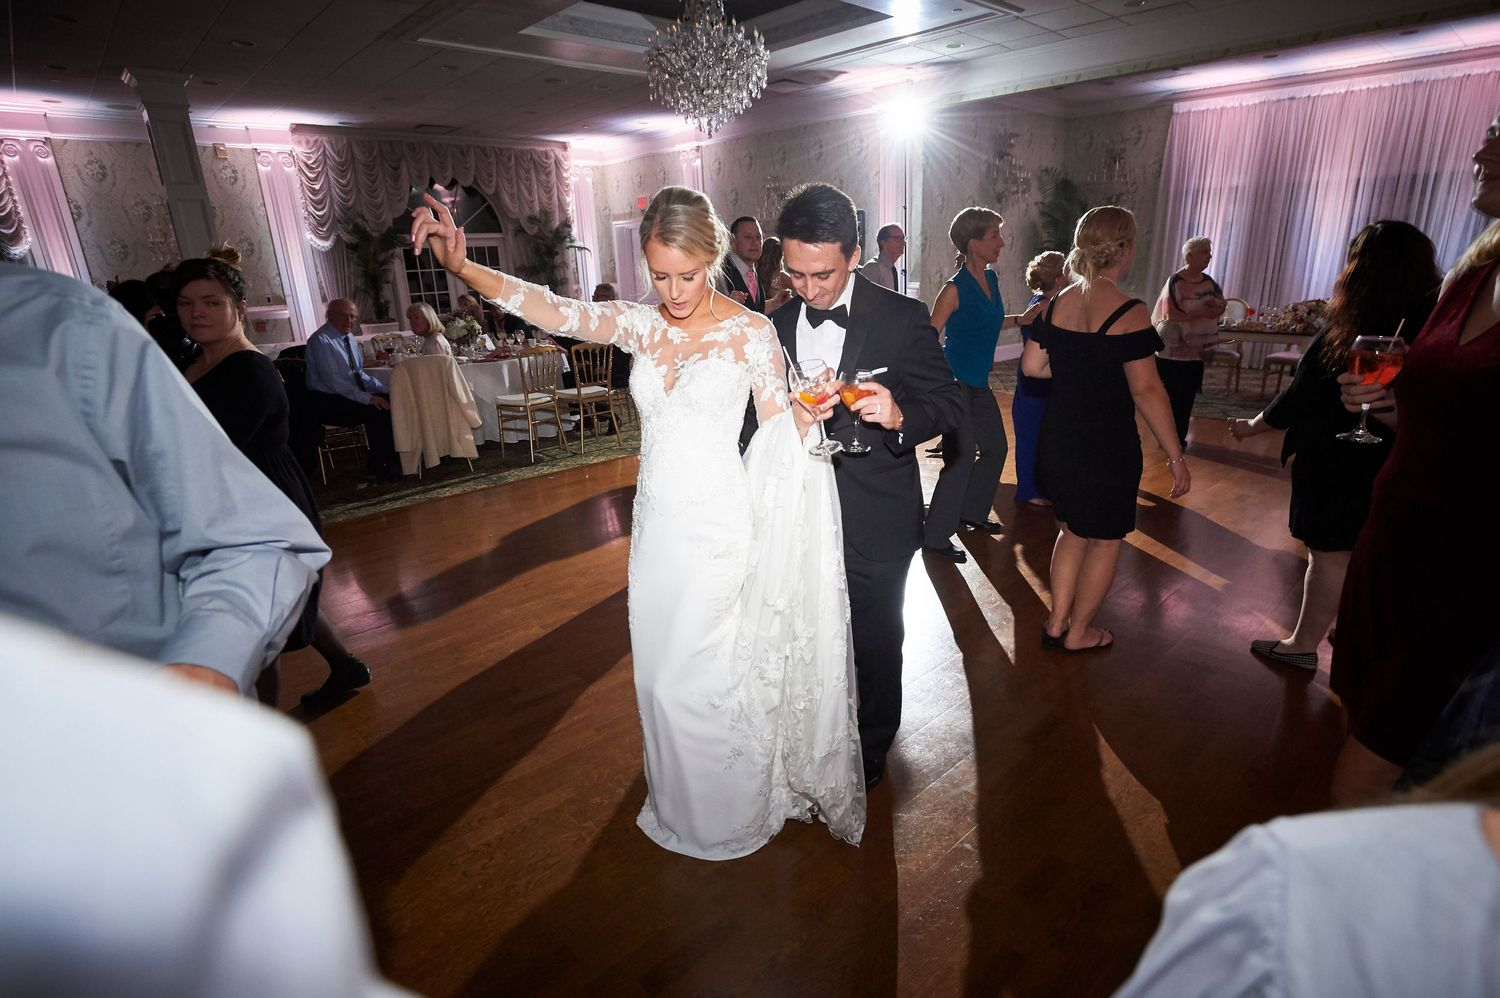 bride and groom dance during the reception at Bucks hotel wedding photo